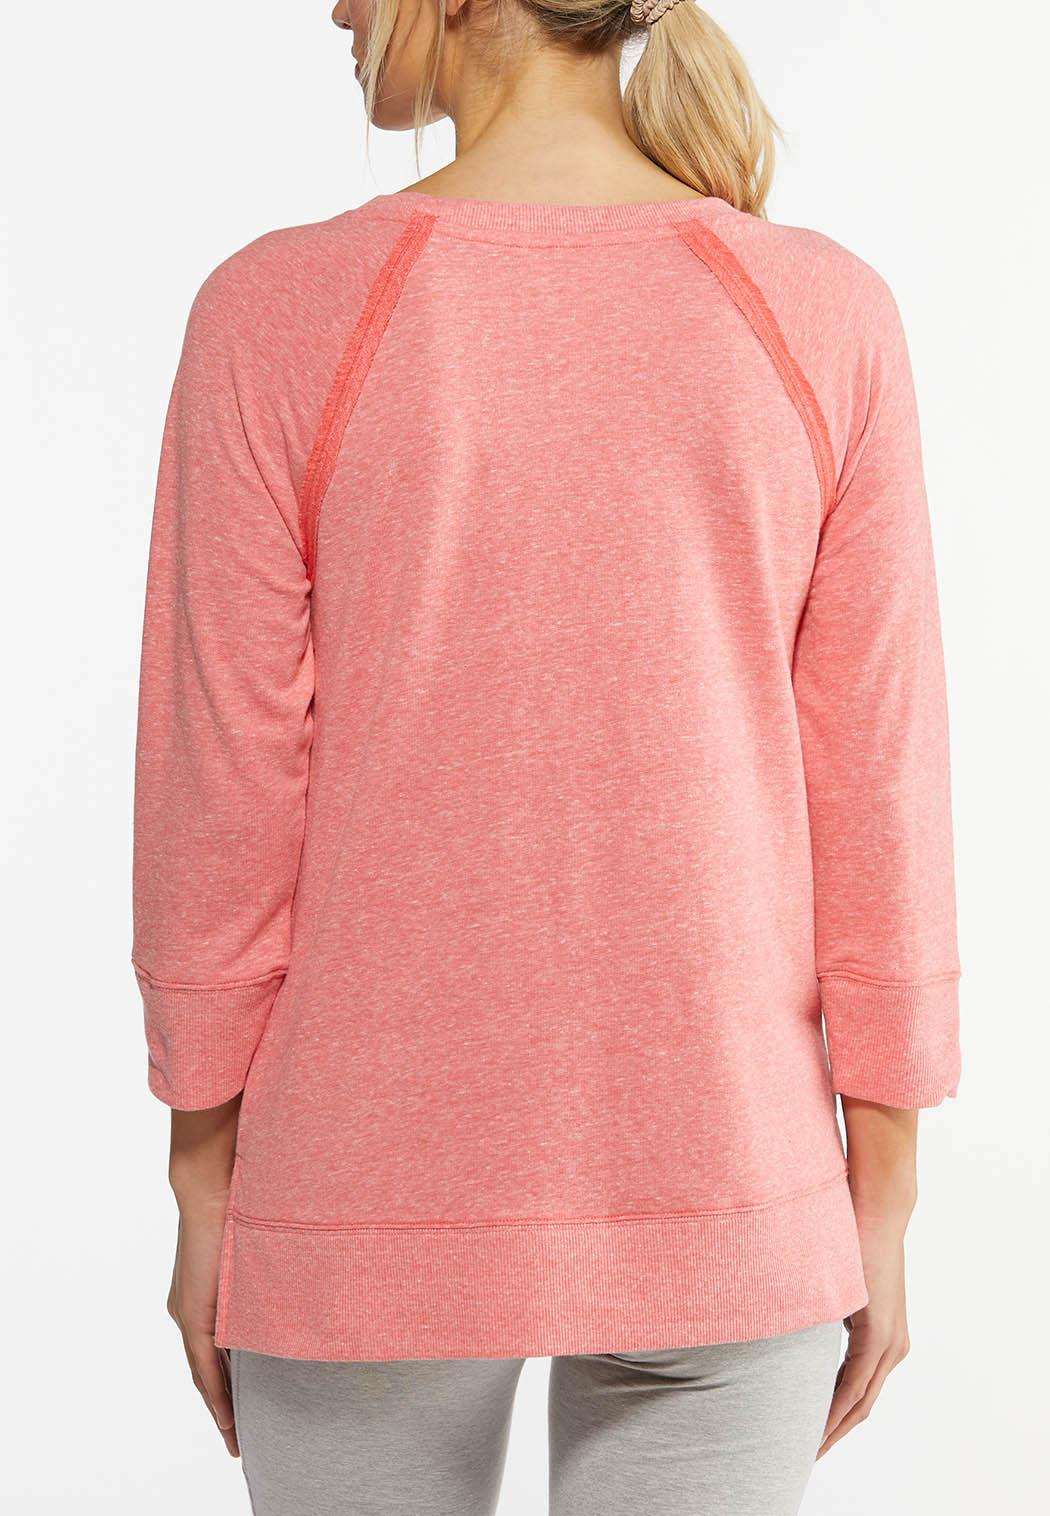 French Terry Athleisure Top (Item #44462347)